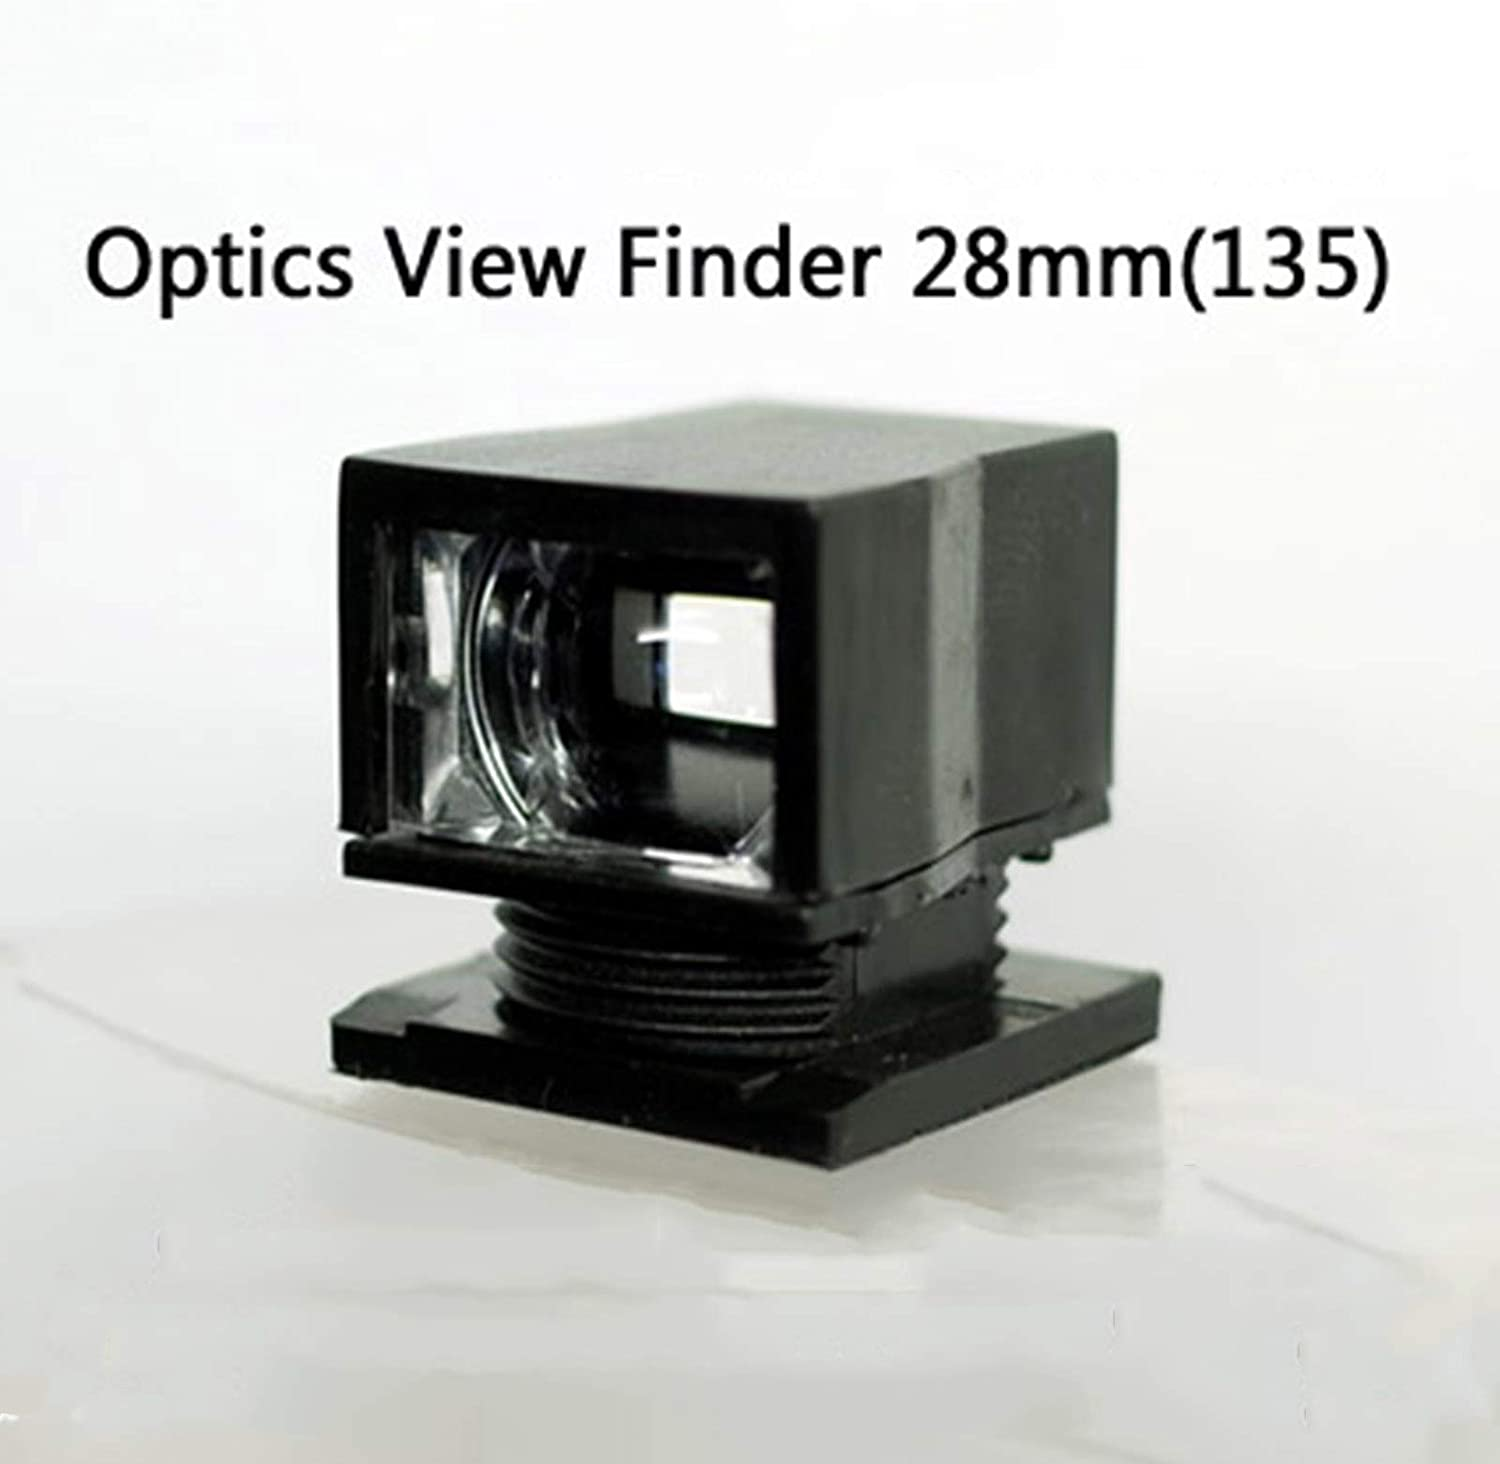 LICHIFIT Professional 28mm Optical Viewfinder Repair Kit for Ricoh GR GRD2 GRD3 GRD4